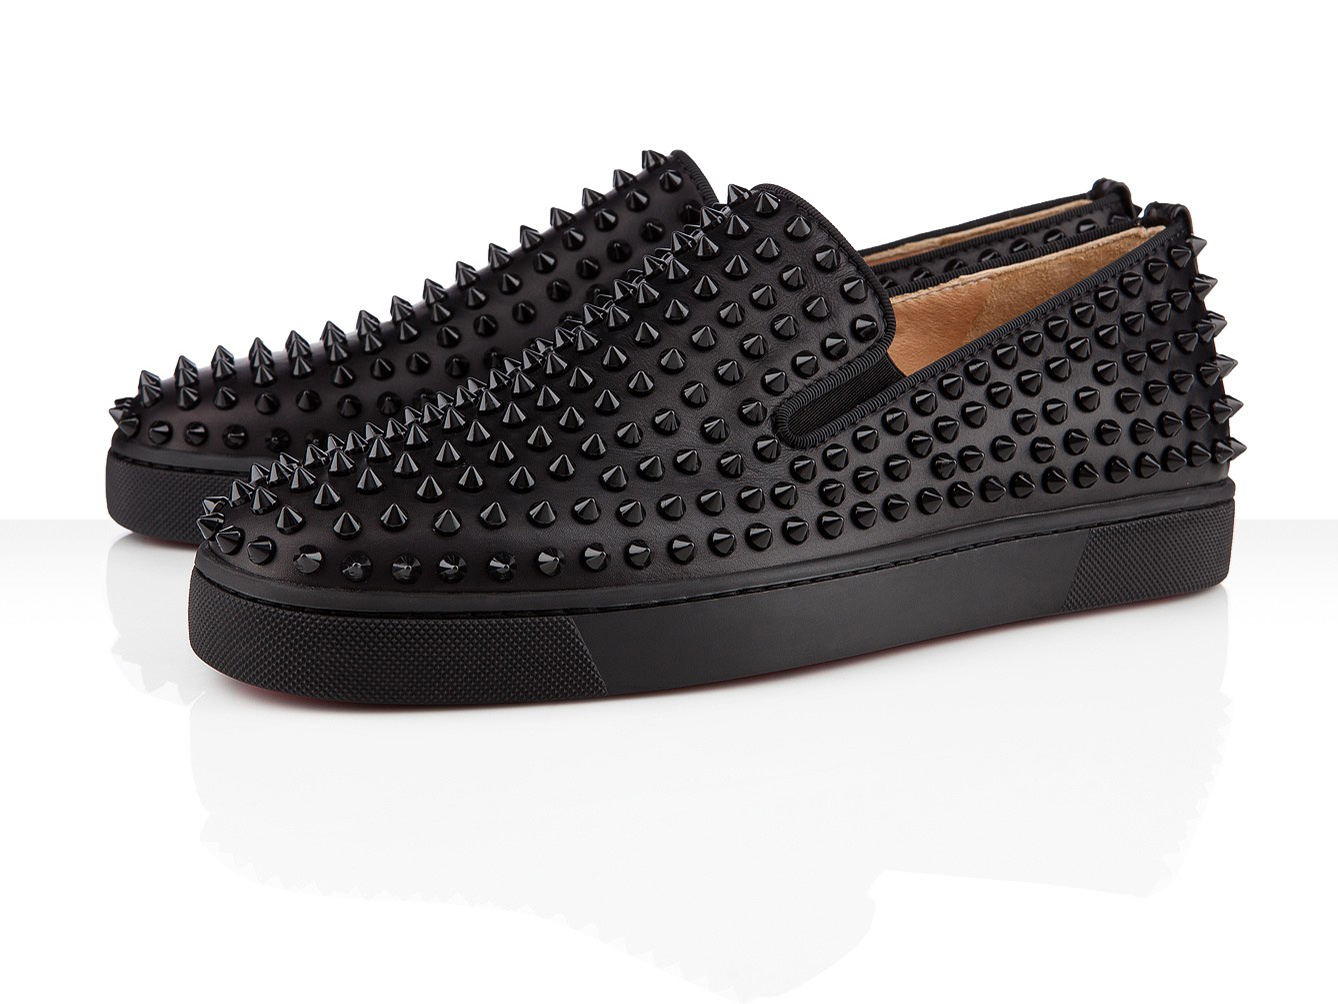 sports shoes 4d040 0866c Christian Louboutin Fall Winter 2012 Rollerboy Velvet Antracite Spikes –   1295. This is my favorite among the others from this collection, ...